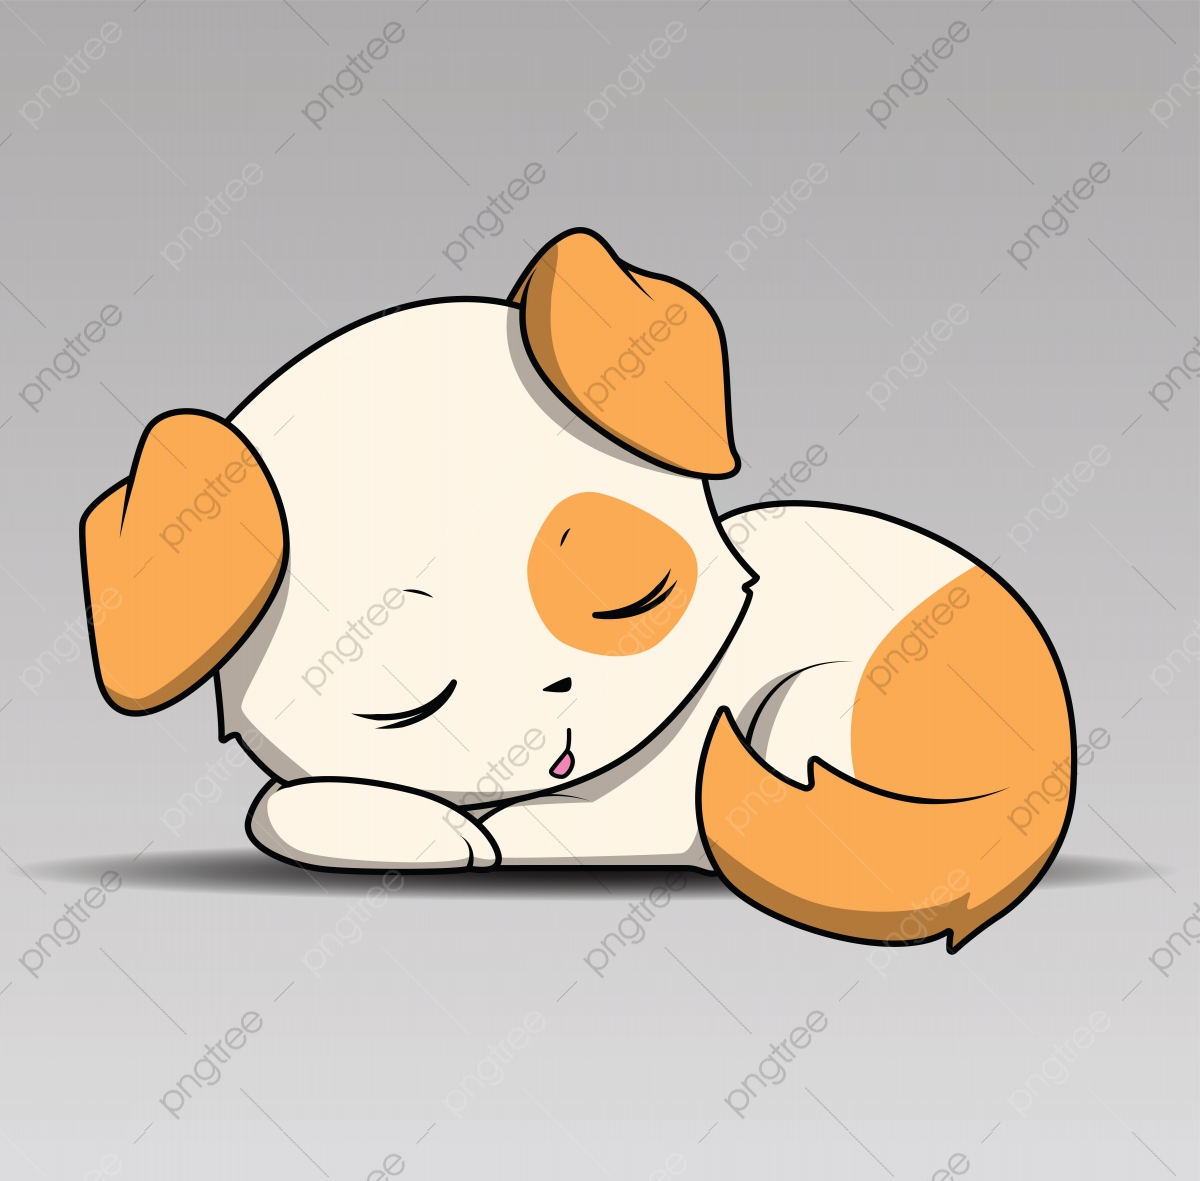 Cute Cartoon Dog Puppy Sleep For Design Element Cartoon Dog Adorable Png And Vector With Transparent Background For Free Download